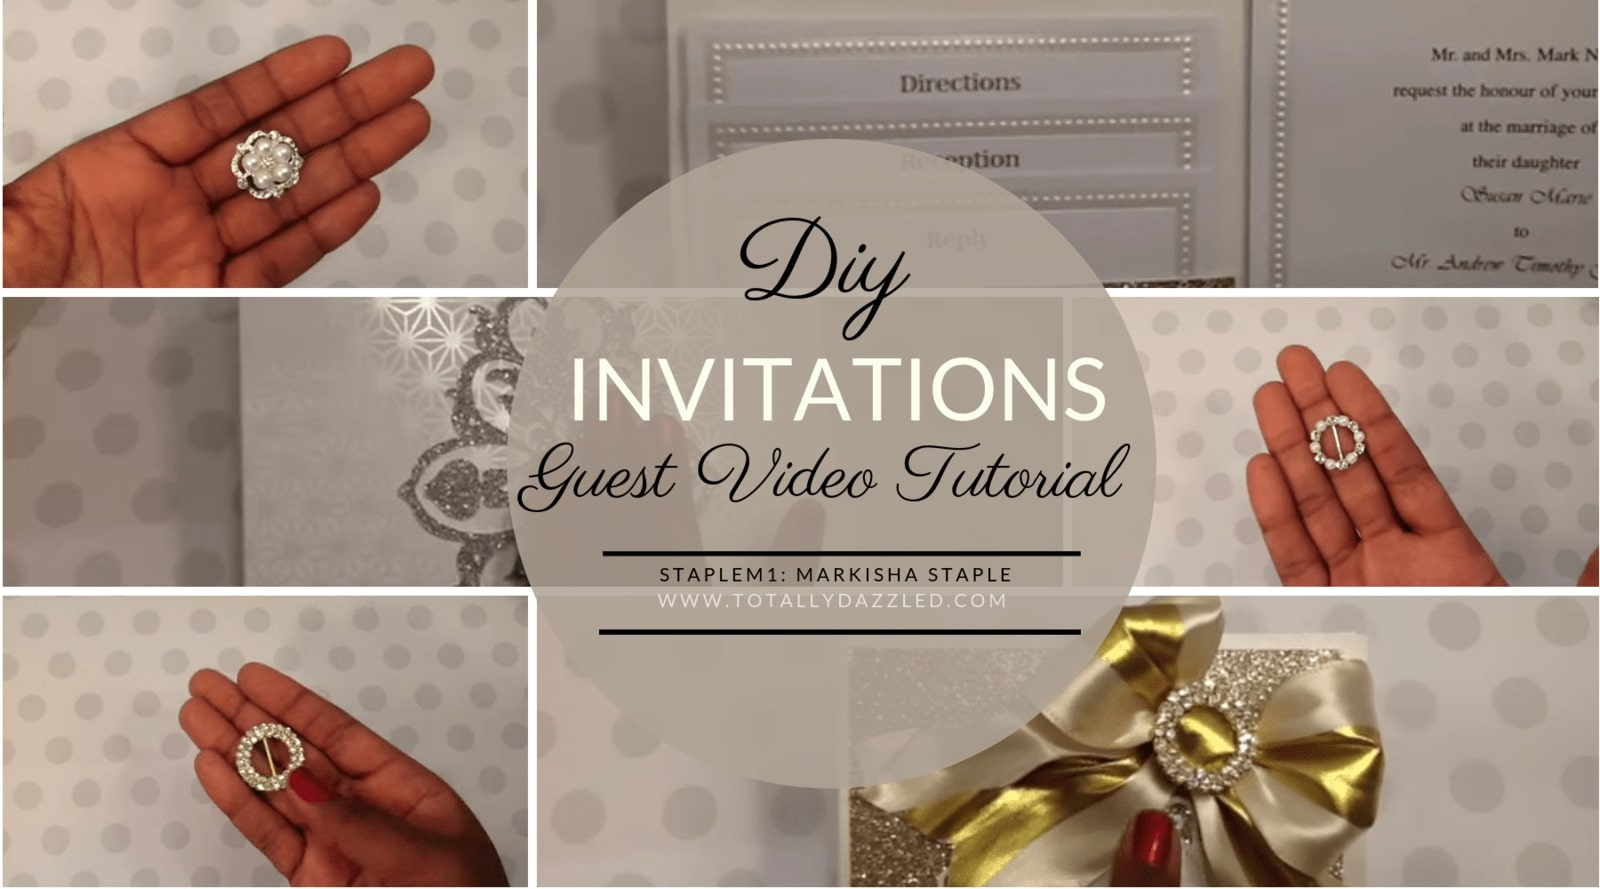 Totally Dazzled Wedding Invitations with Youtuber Markisha Staple